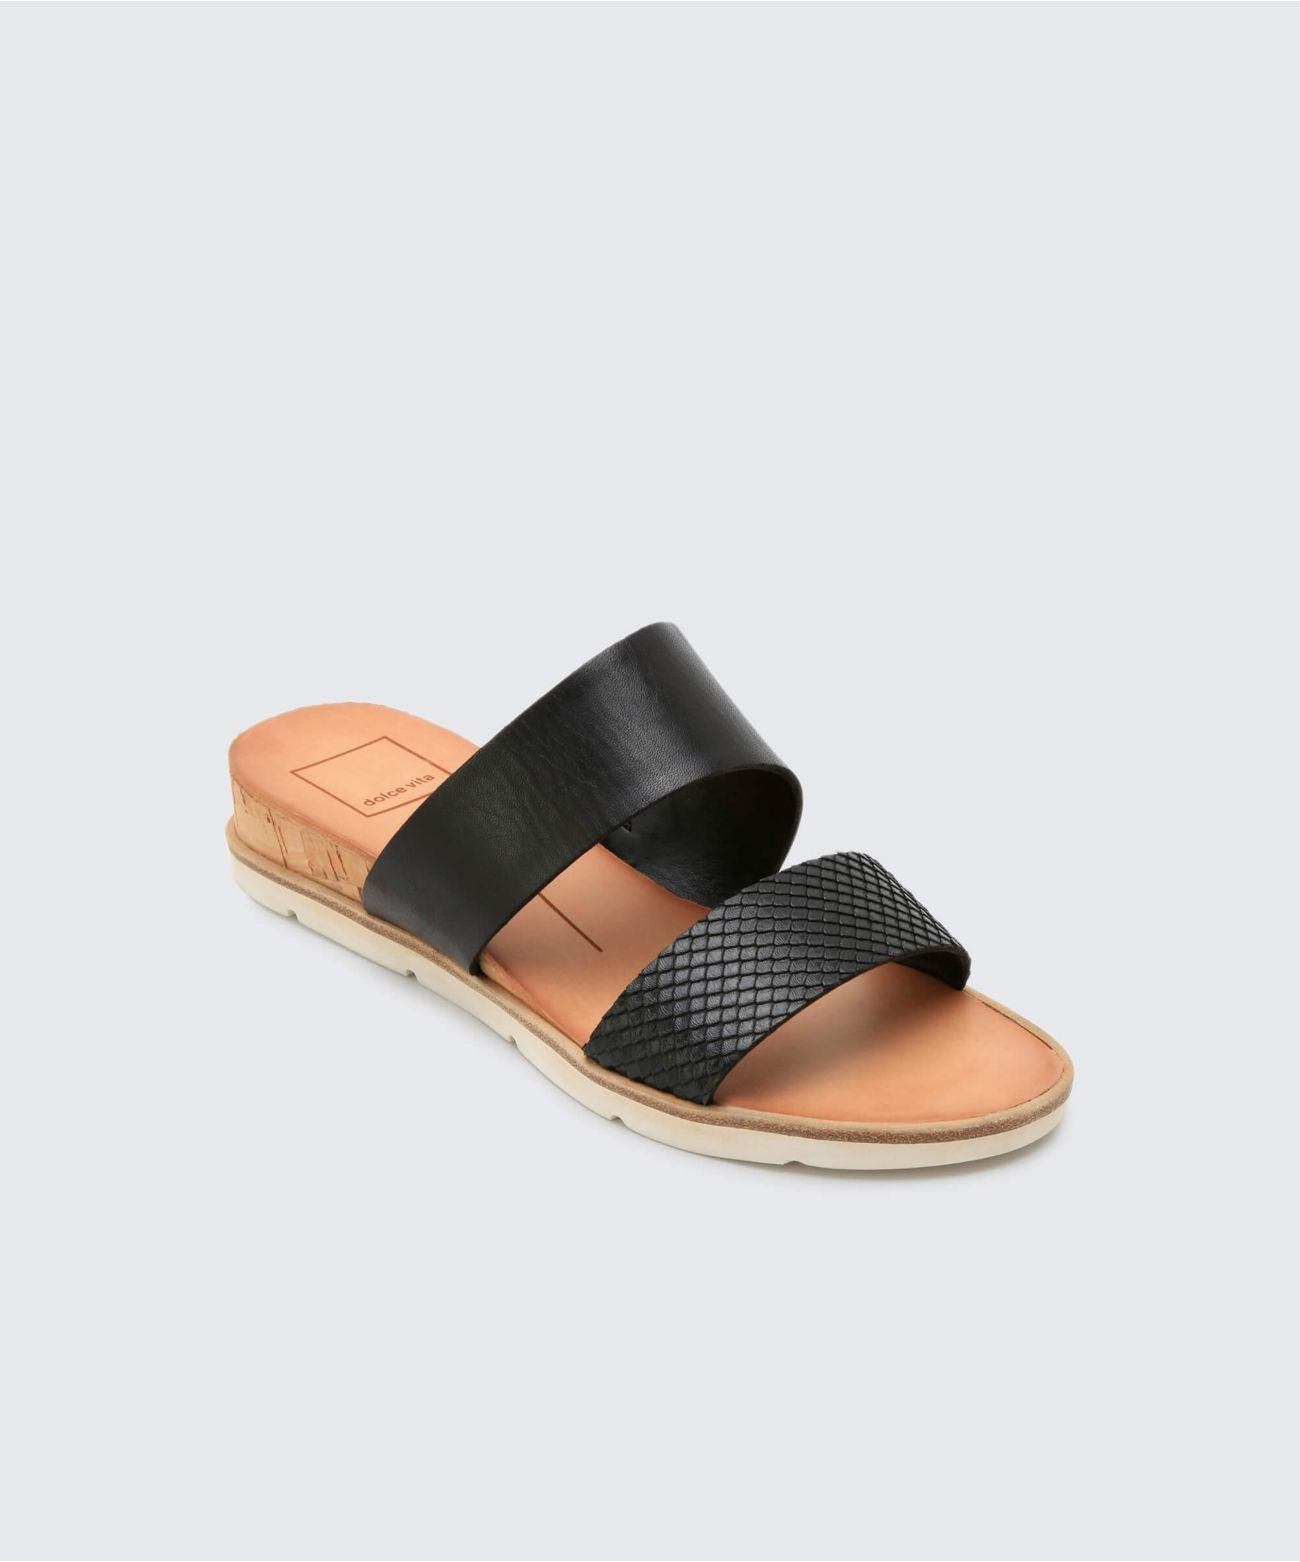 Dolce Vita Vala Double Strap Slide - Black